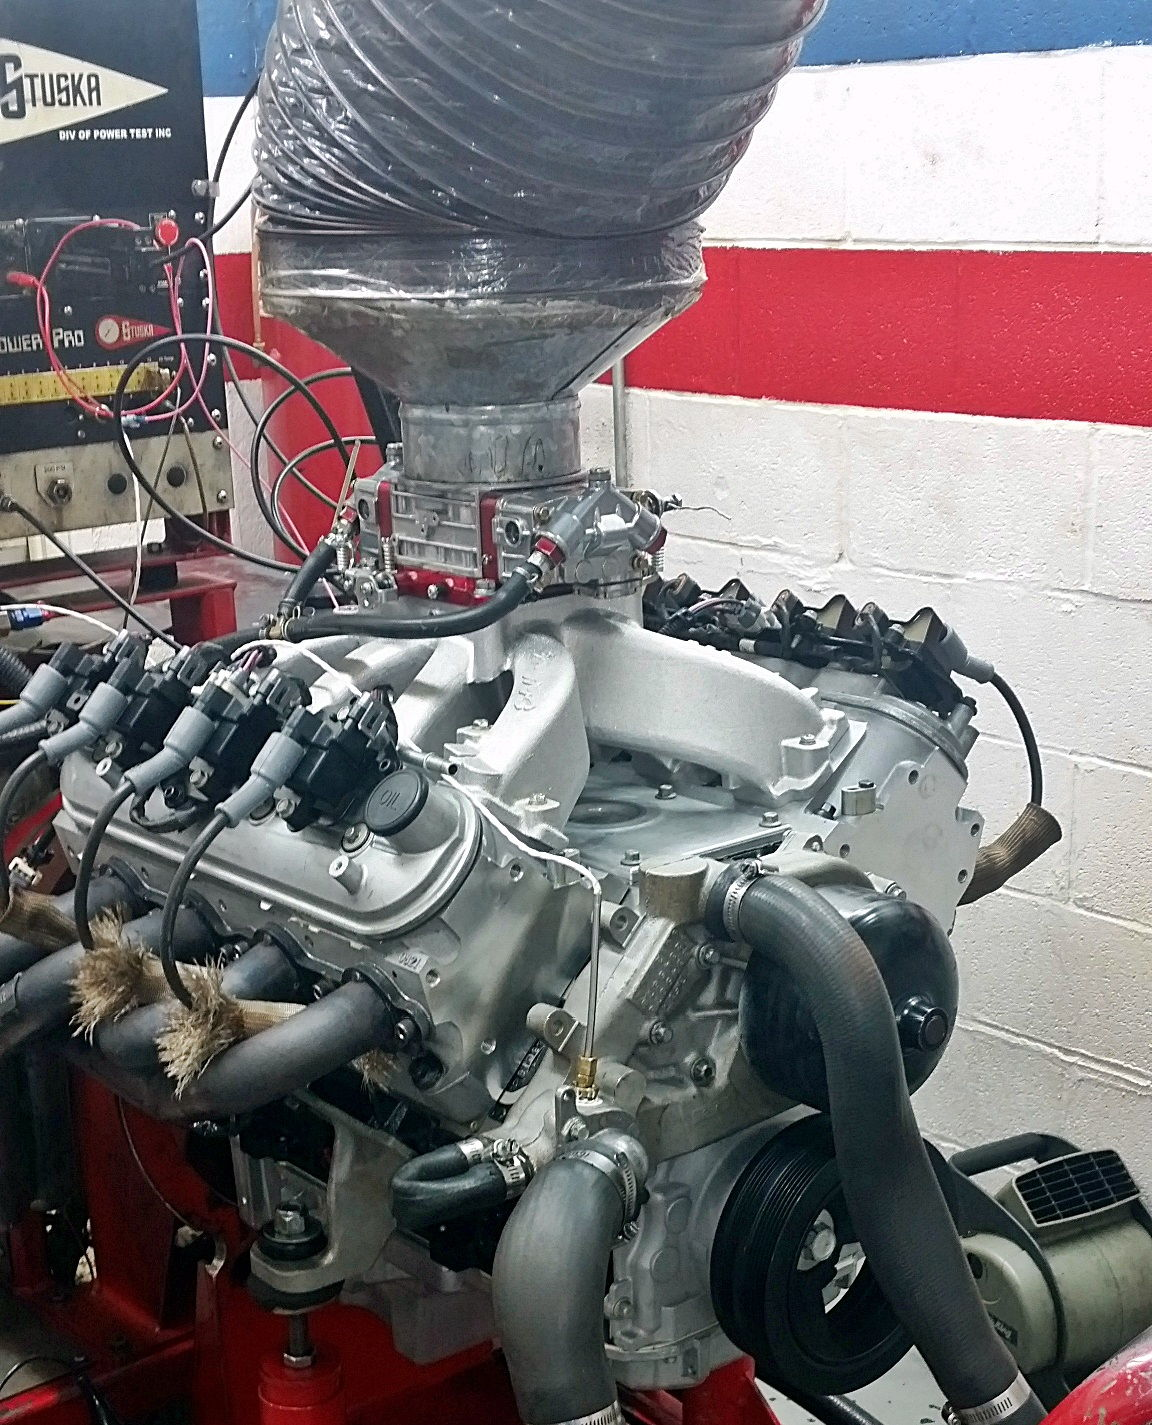 Ls3 Engine Package For Sale: Atk R&d 370ci Lq4 Engine For Sale! 559hp/494tq